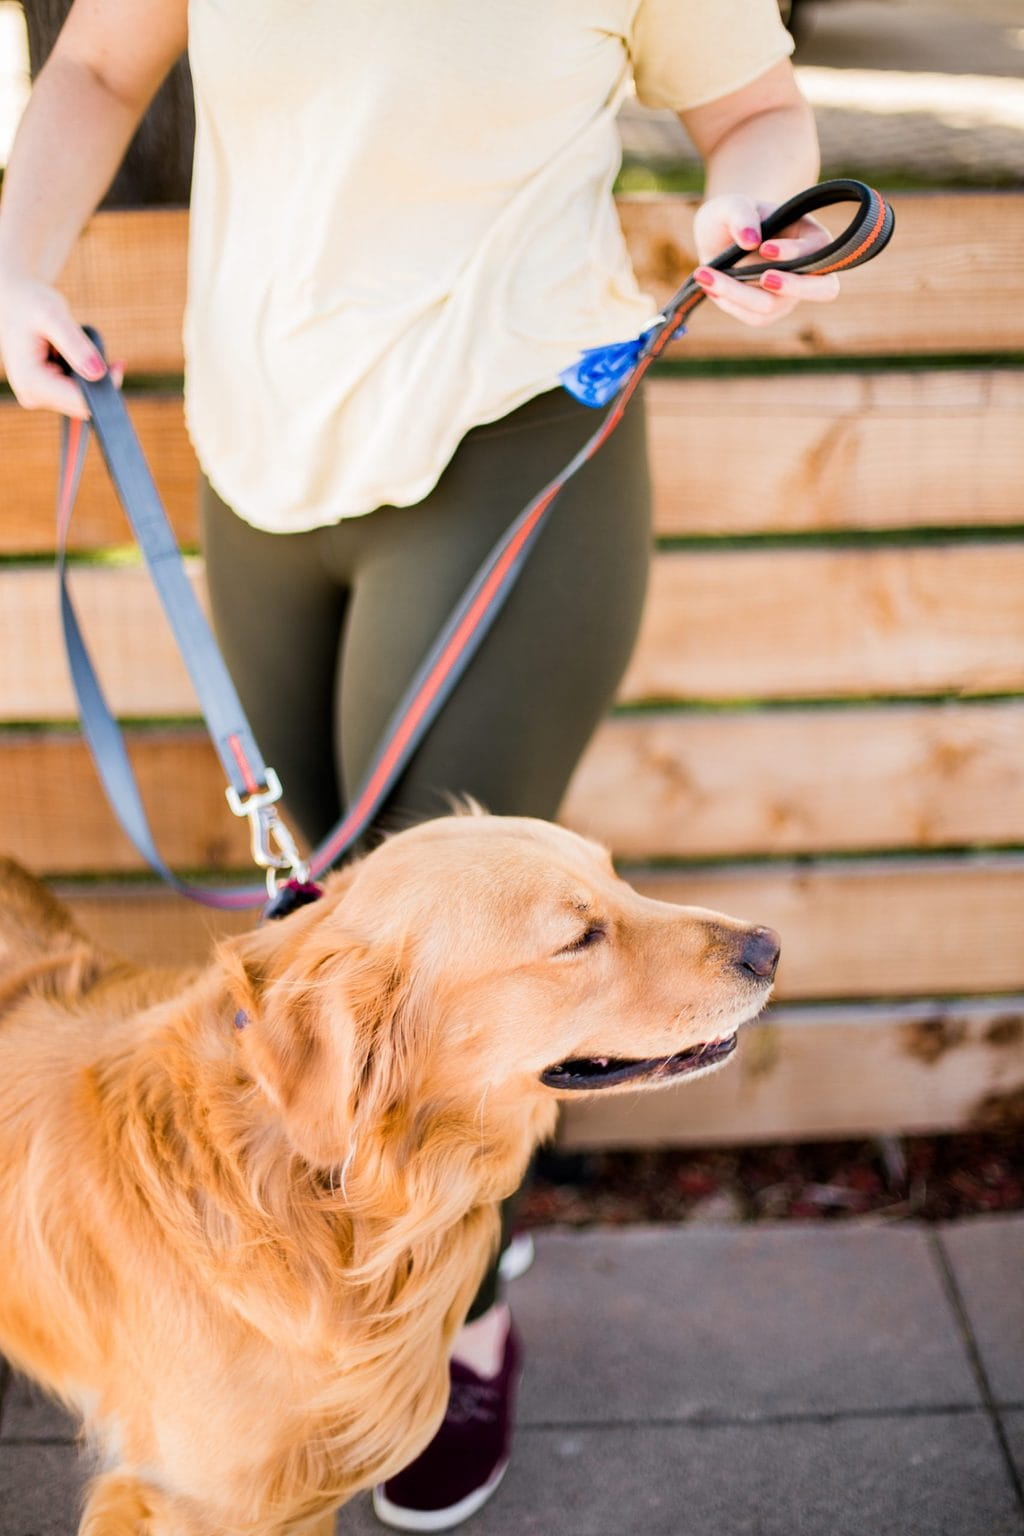 A golden retriever puppy outside being walked with a leash and his owner.